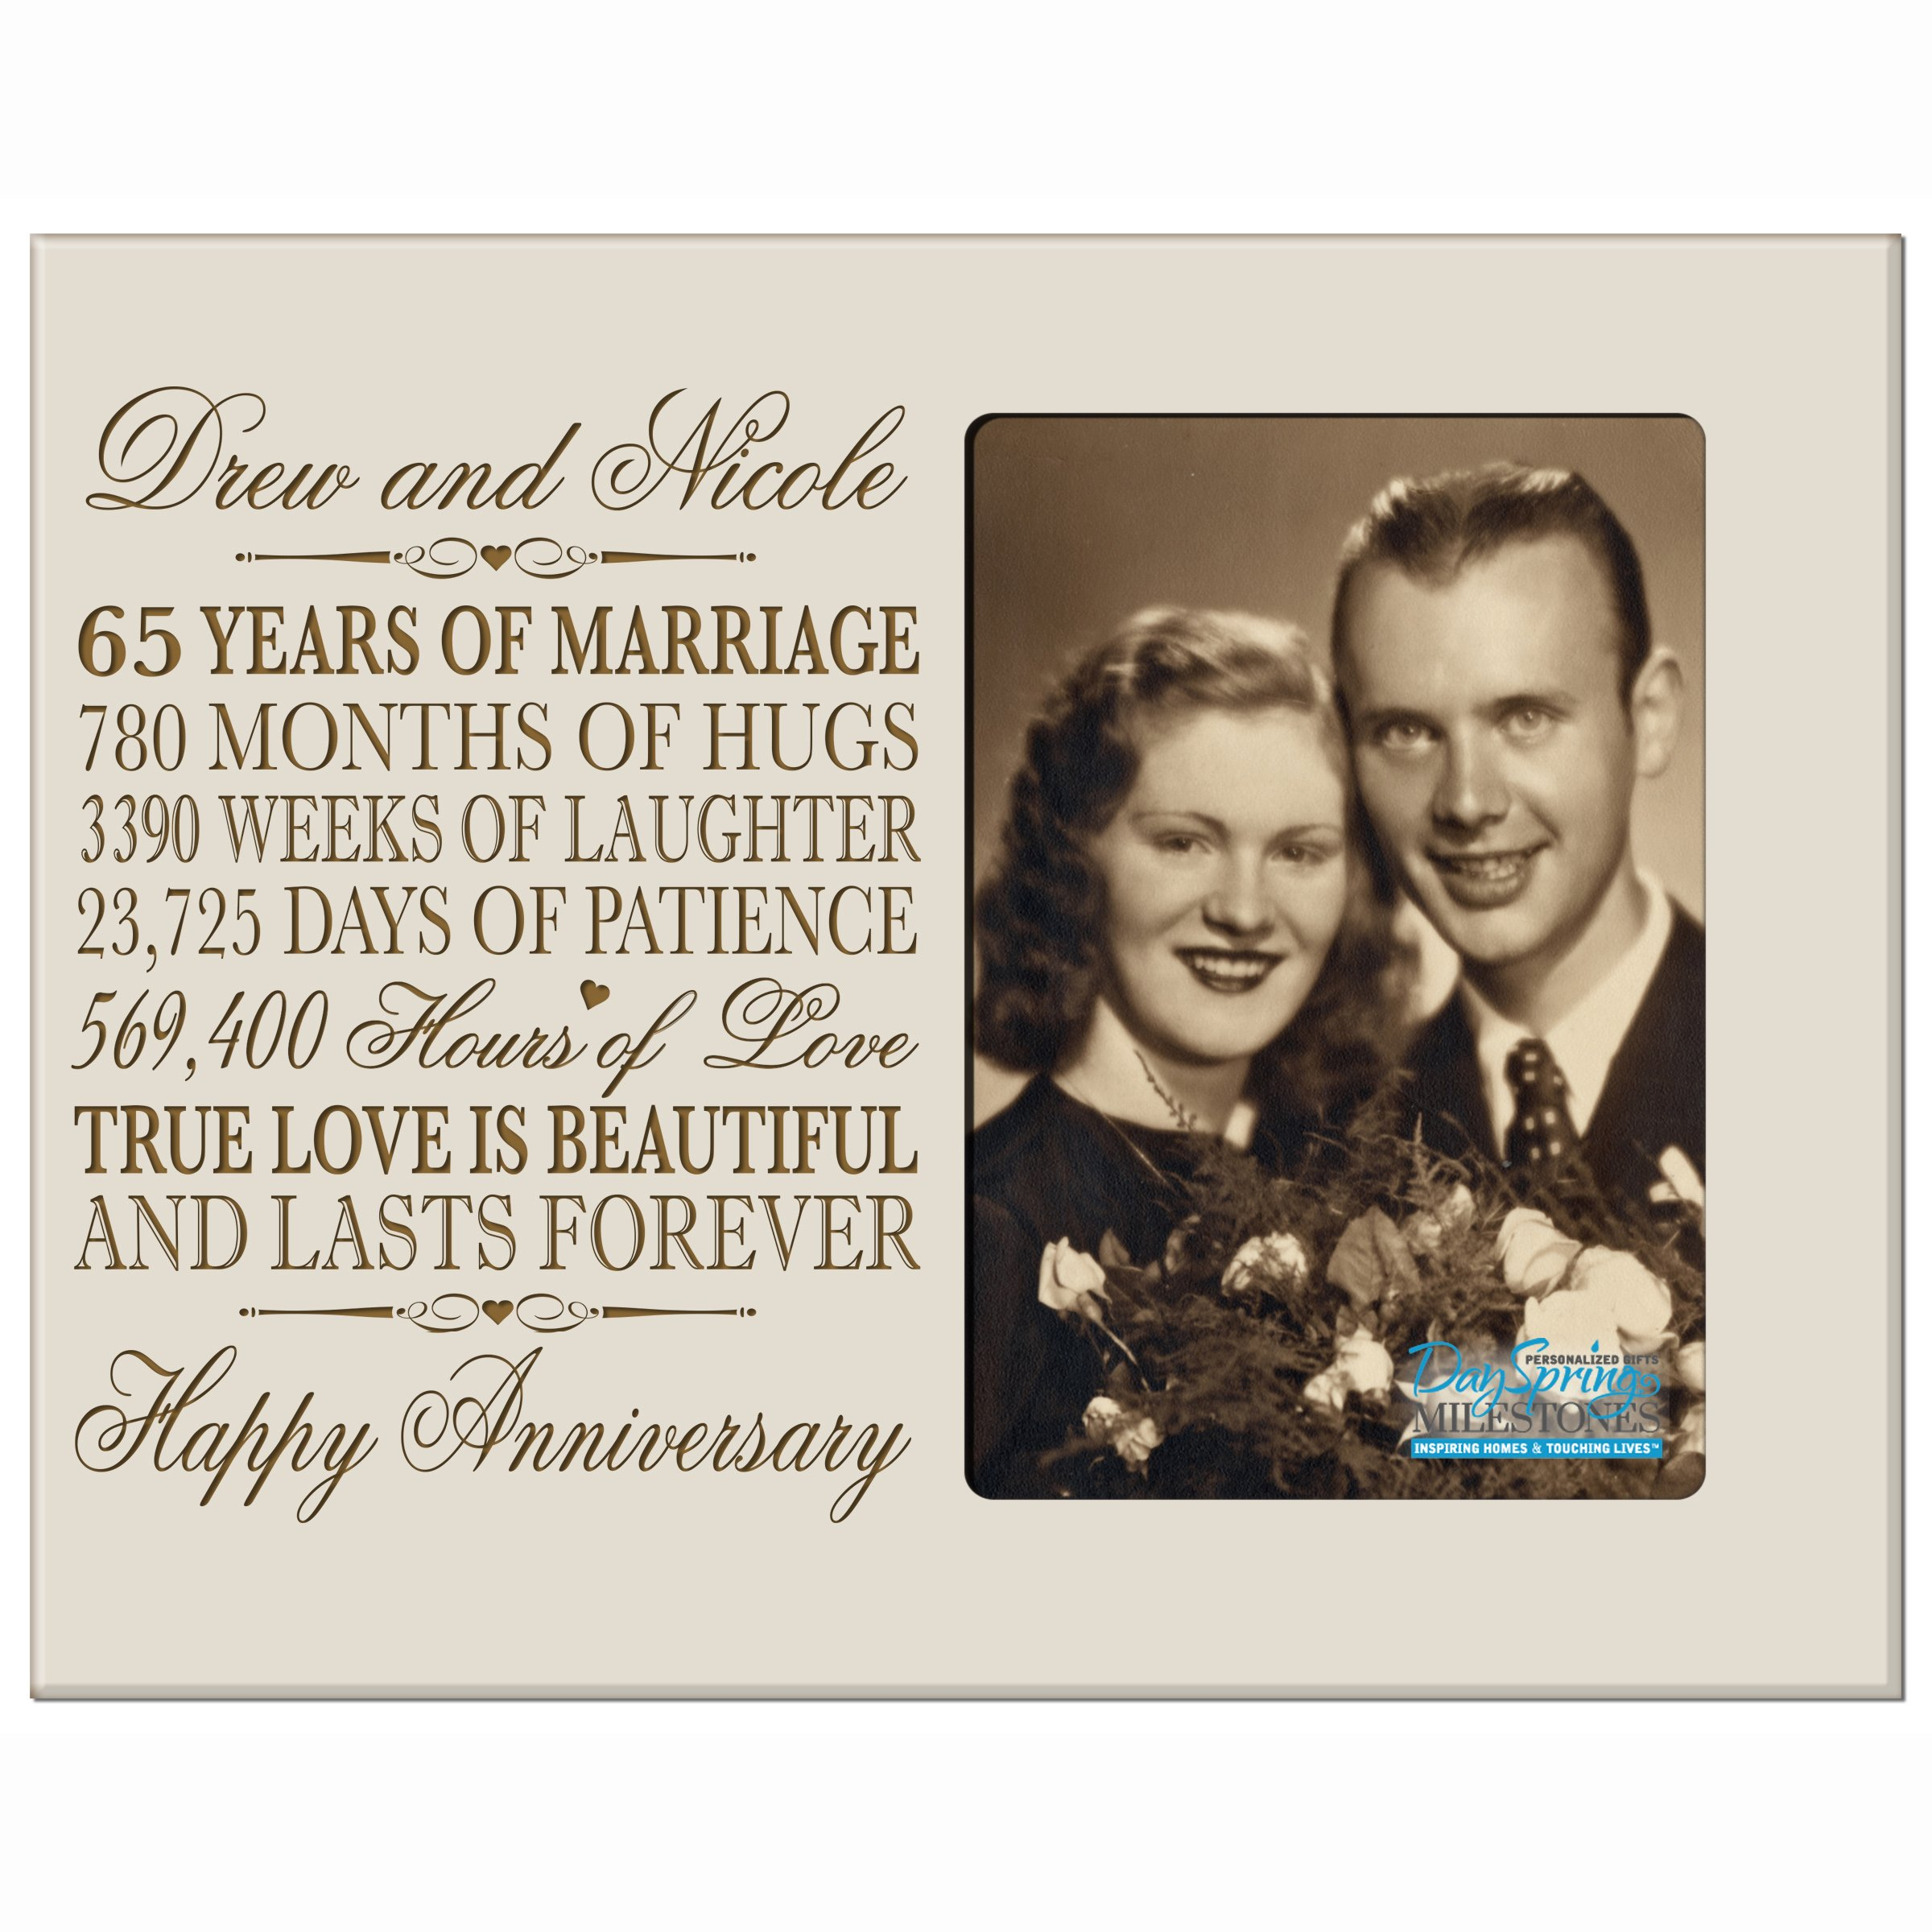 Gifts For 65th Wedding Anniversary: Buy Personalized 65th Blue Sapphire Wedding Anniversary